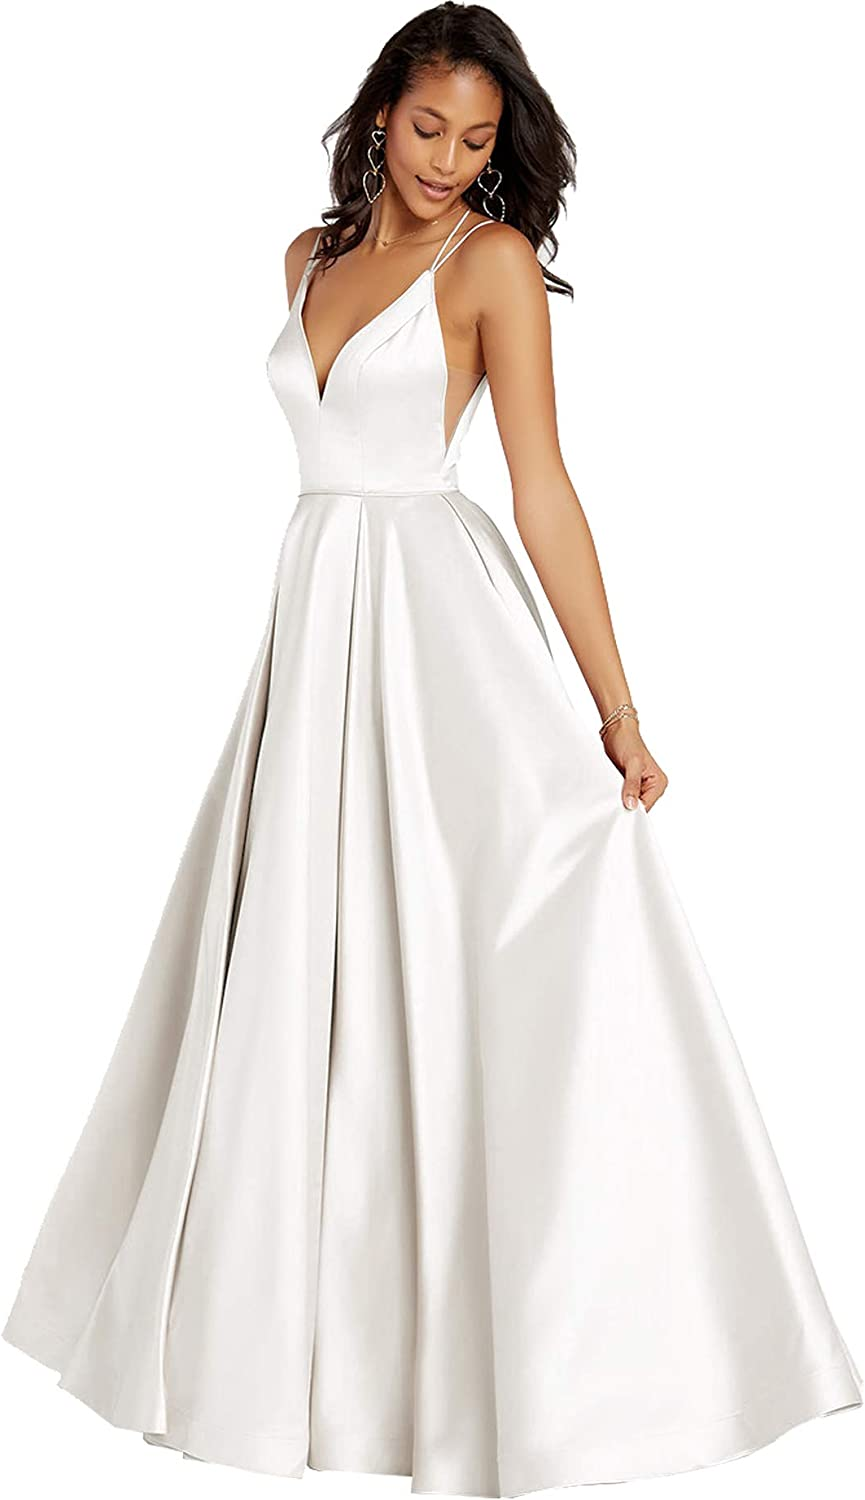 Beauty Bridal Womens Spaghetti Straps Prom Dresses for Women Satin Formal Evening Gown Z05